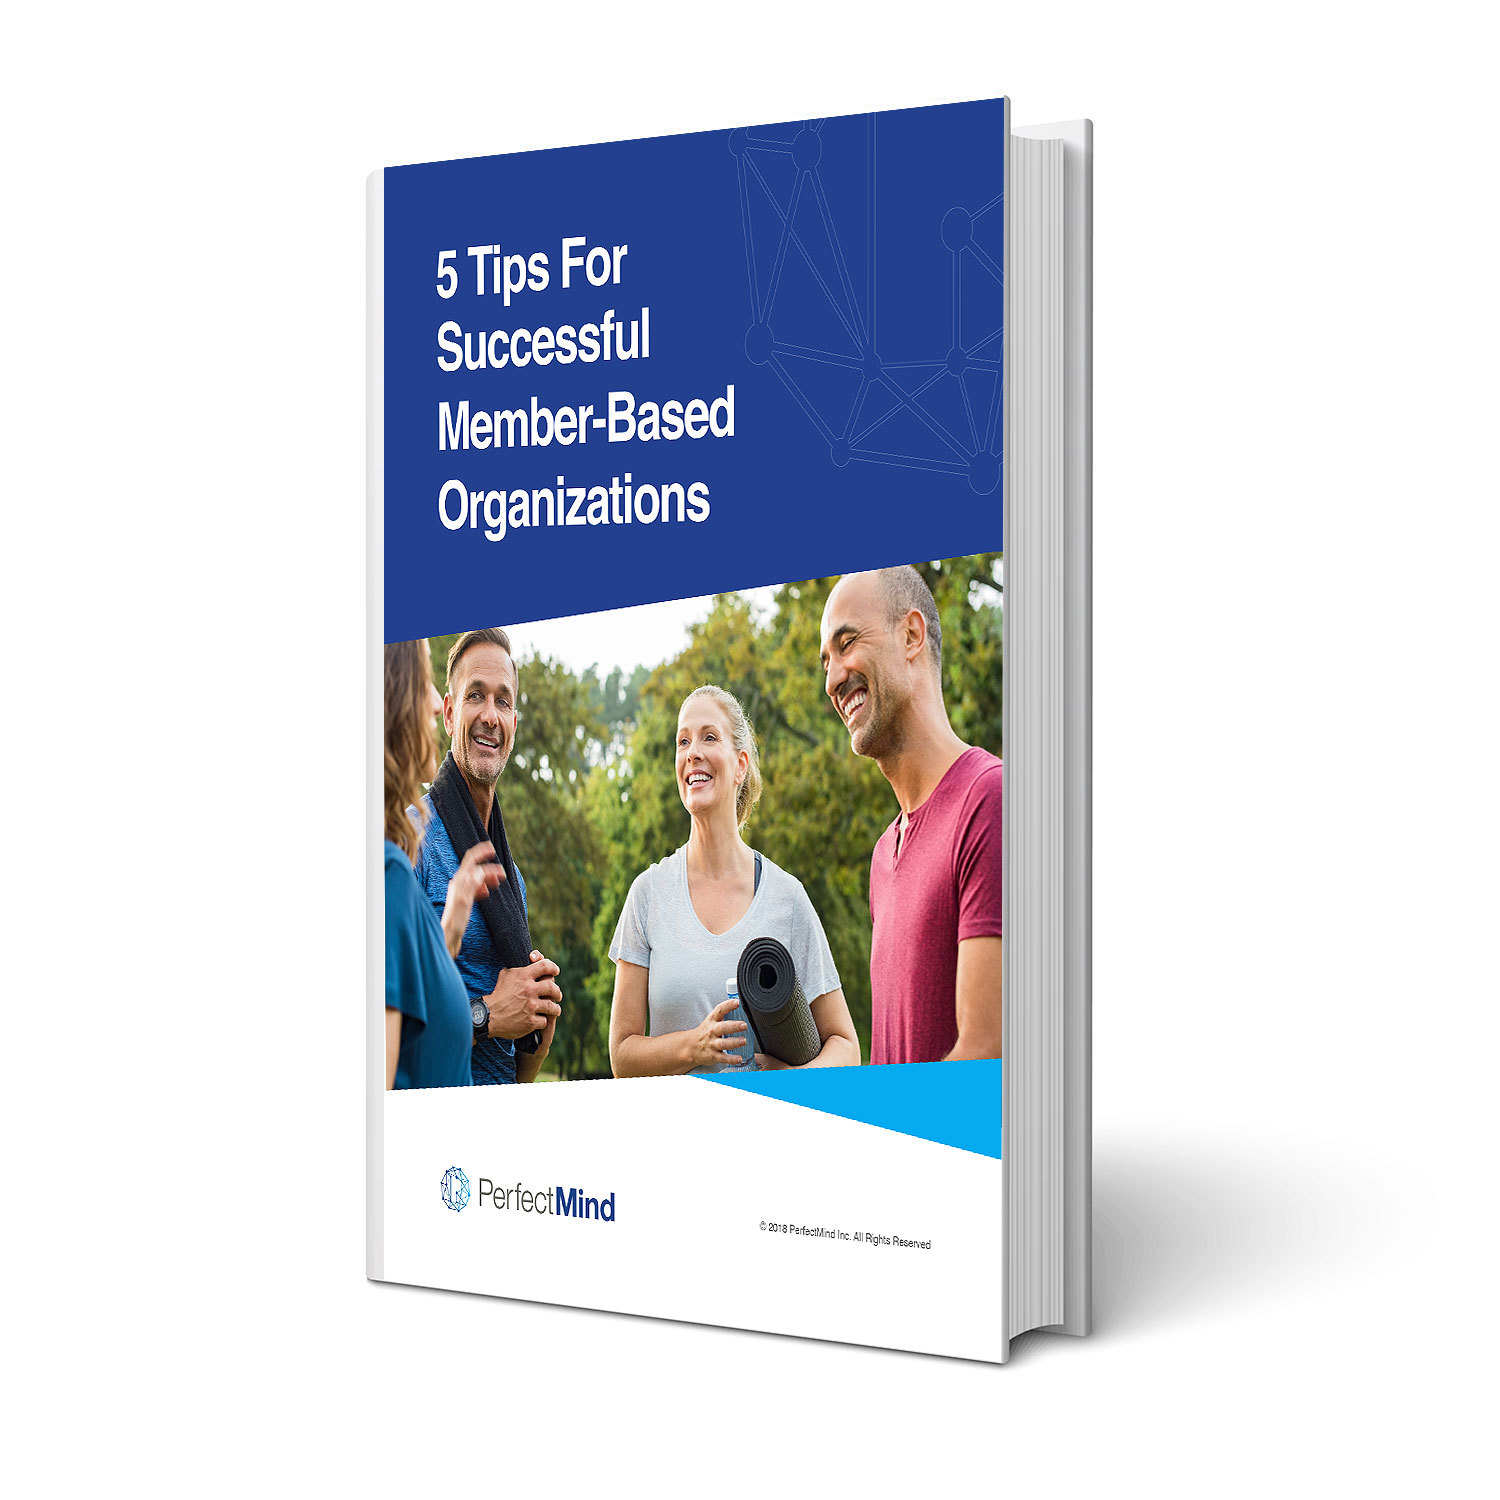 Ebook - 5 Tips for Member-Based Organizations